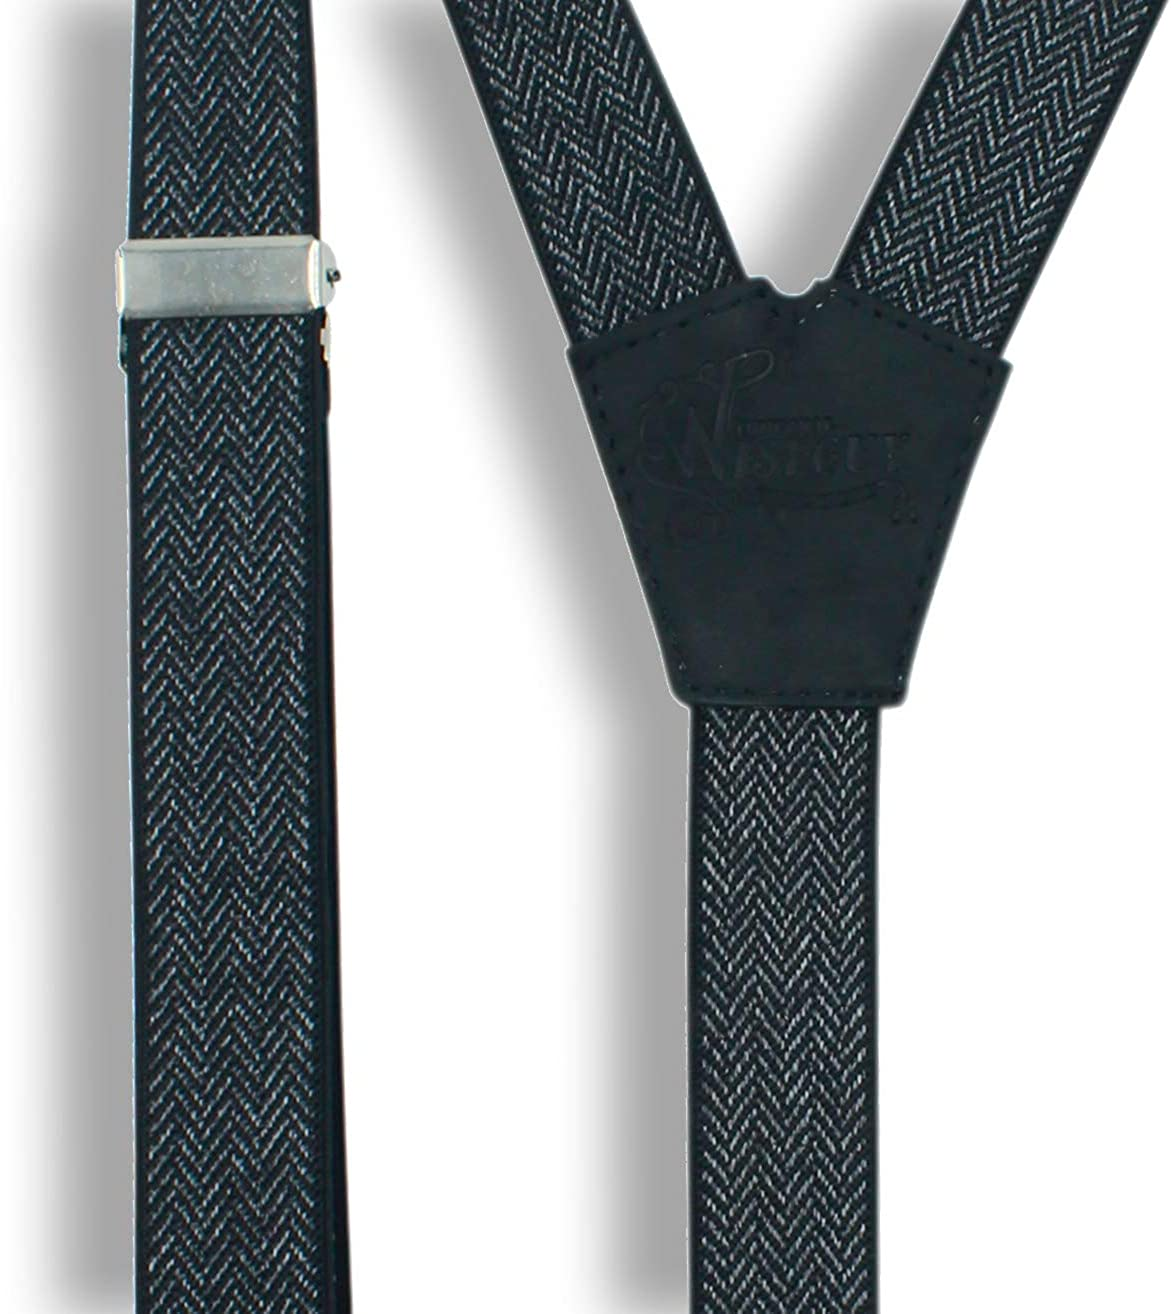 Wiseguy Herringbone Black Handmade Suspenders 1 Inch wide woven Elastic fabric for Men with black leather parts